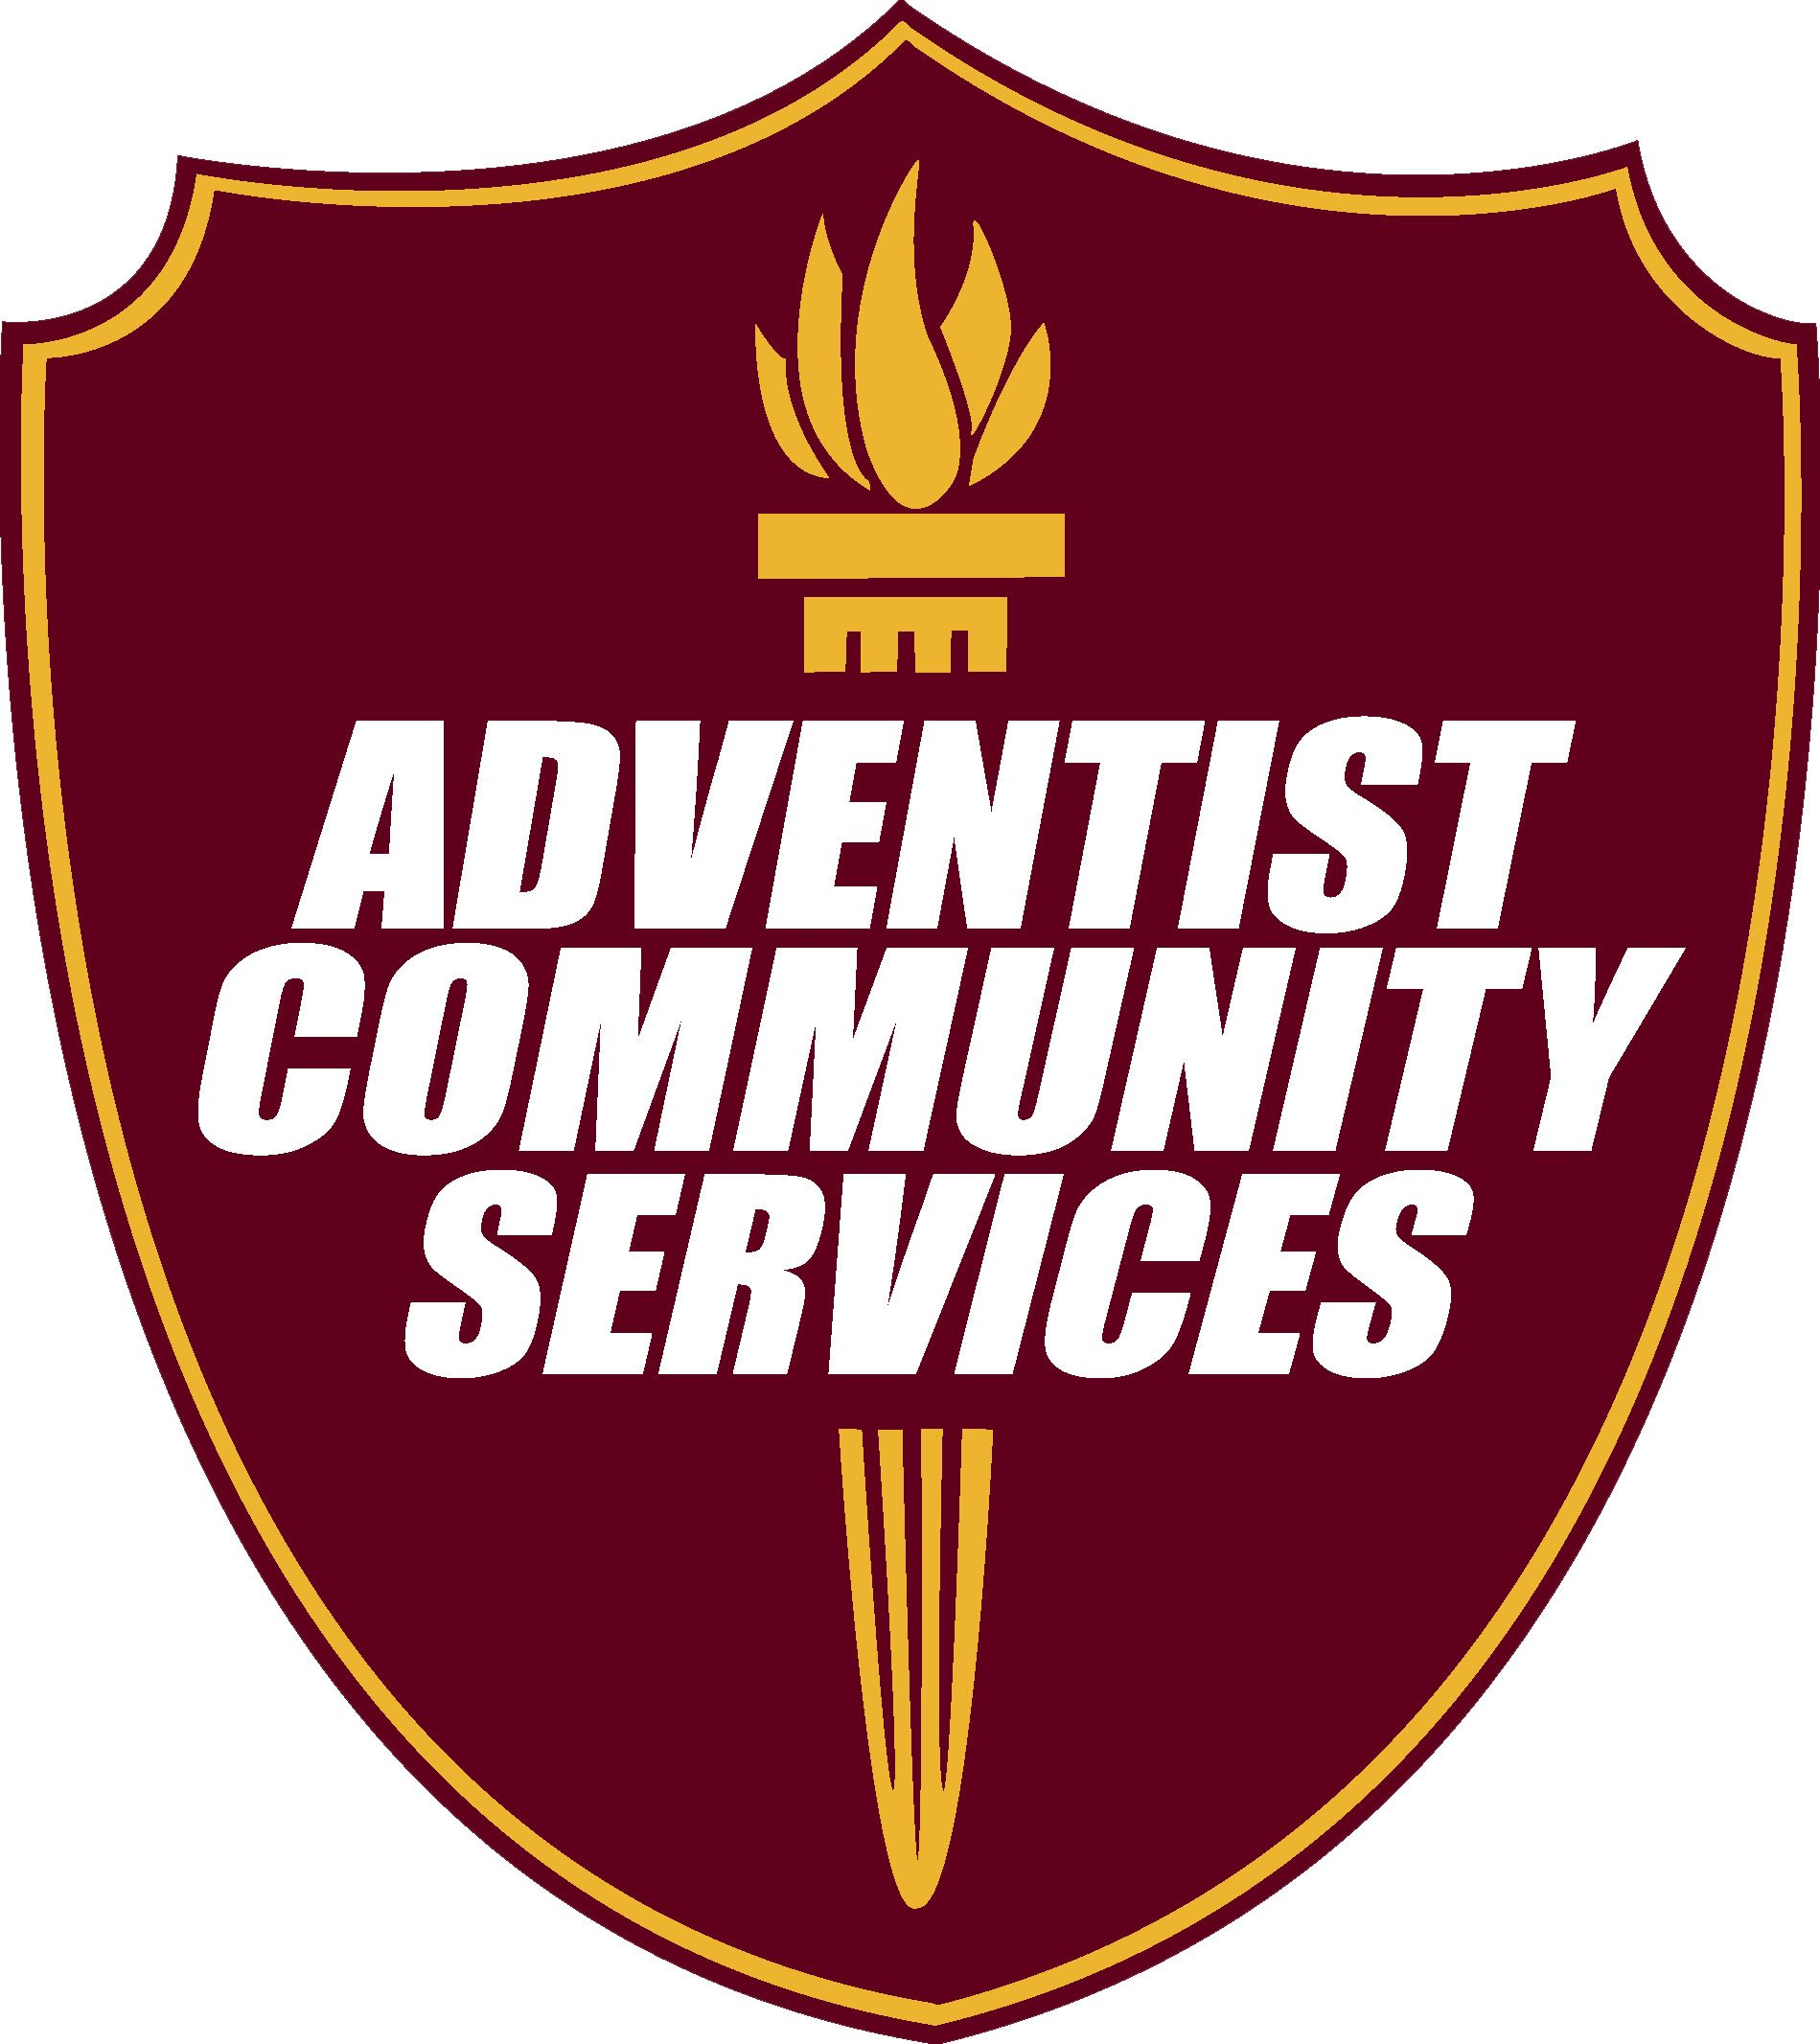 Explore seventh day adventist community service and more